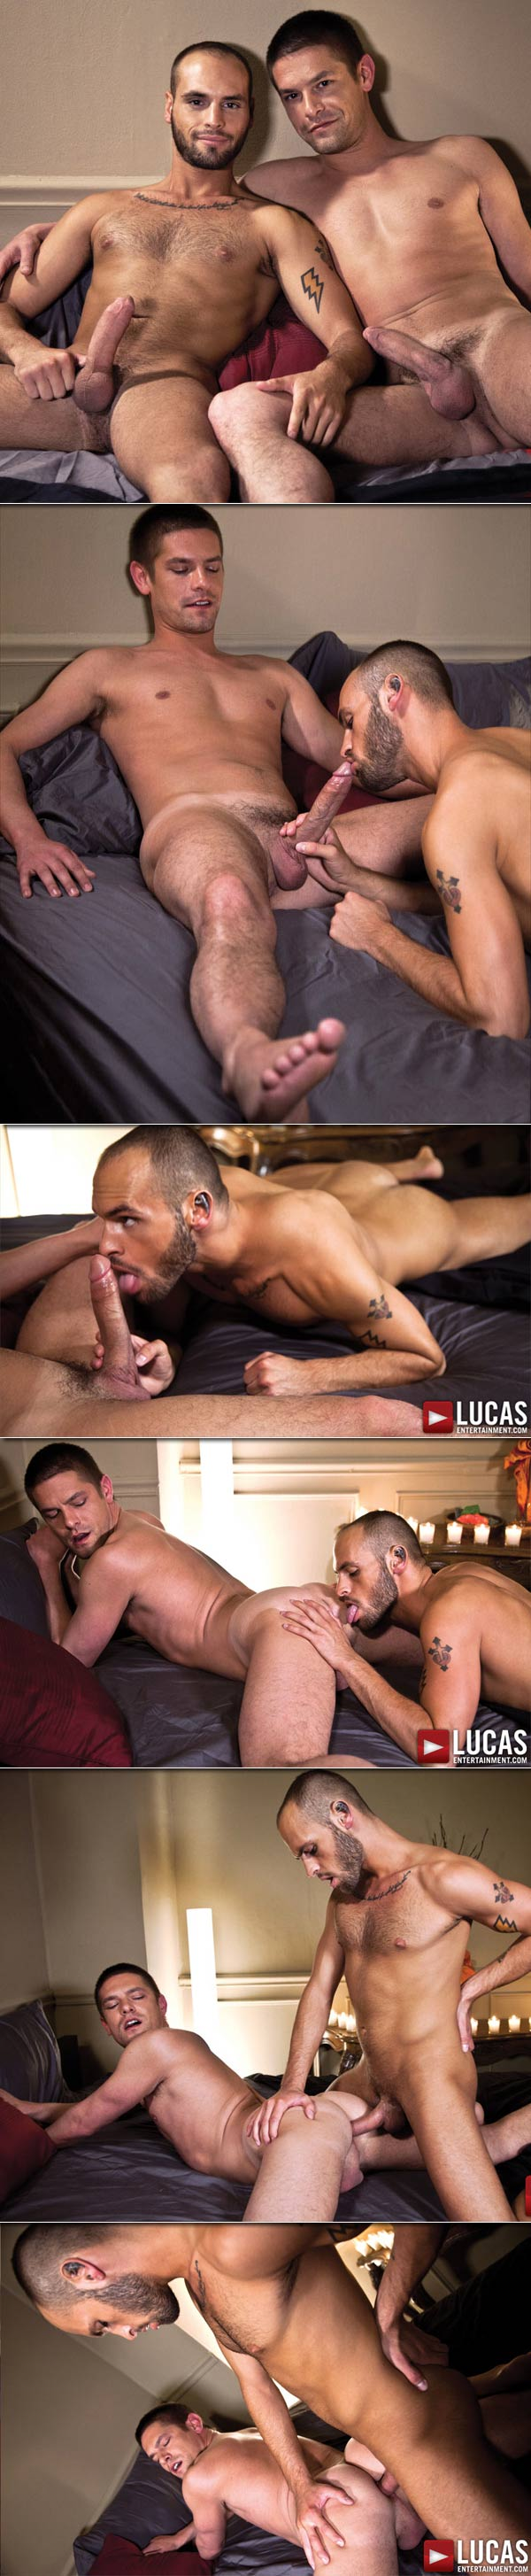 Nova Rubio & Austin Chandler (Fuck Bareback by Candlelight) at LucasEntertainment.com